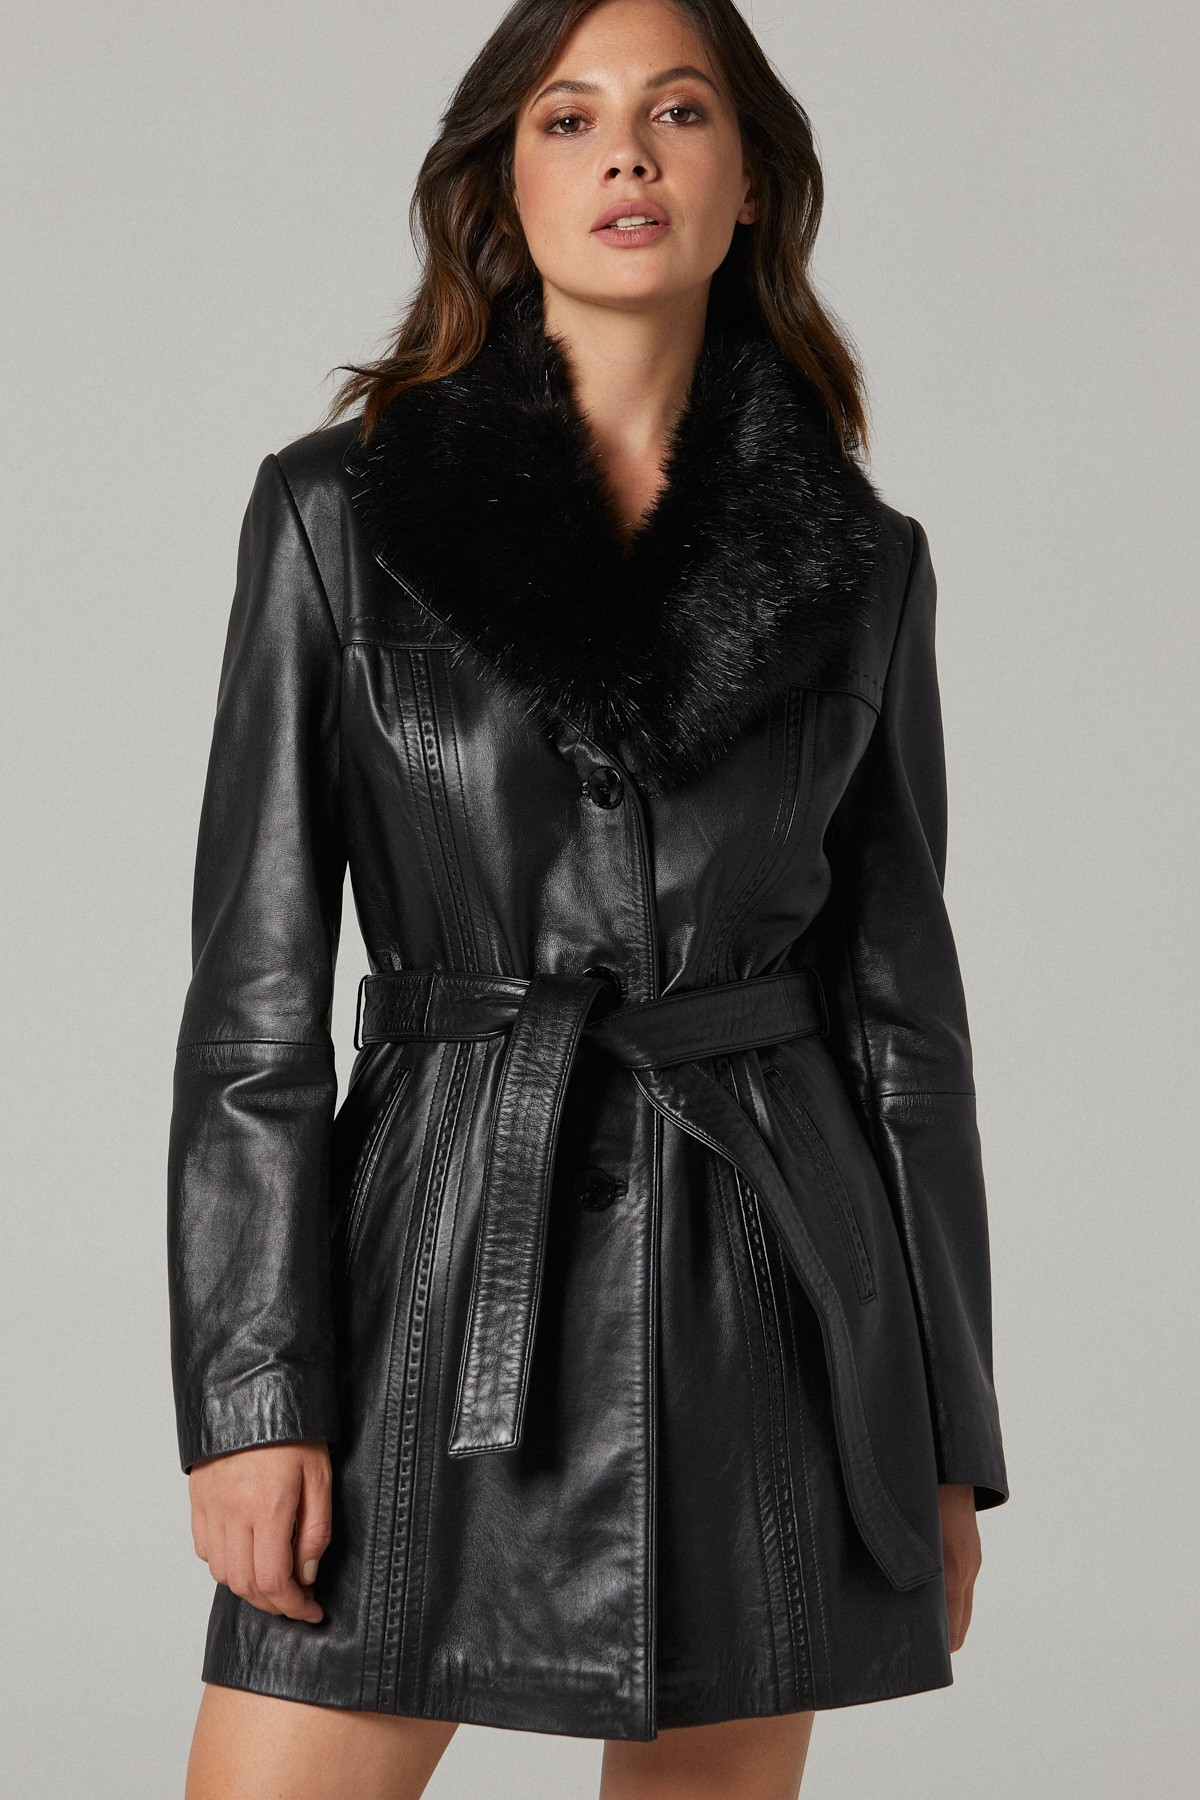 Vintage Leather Coats For Womens